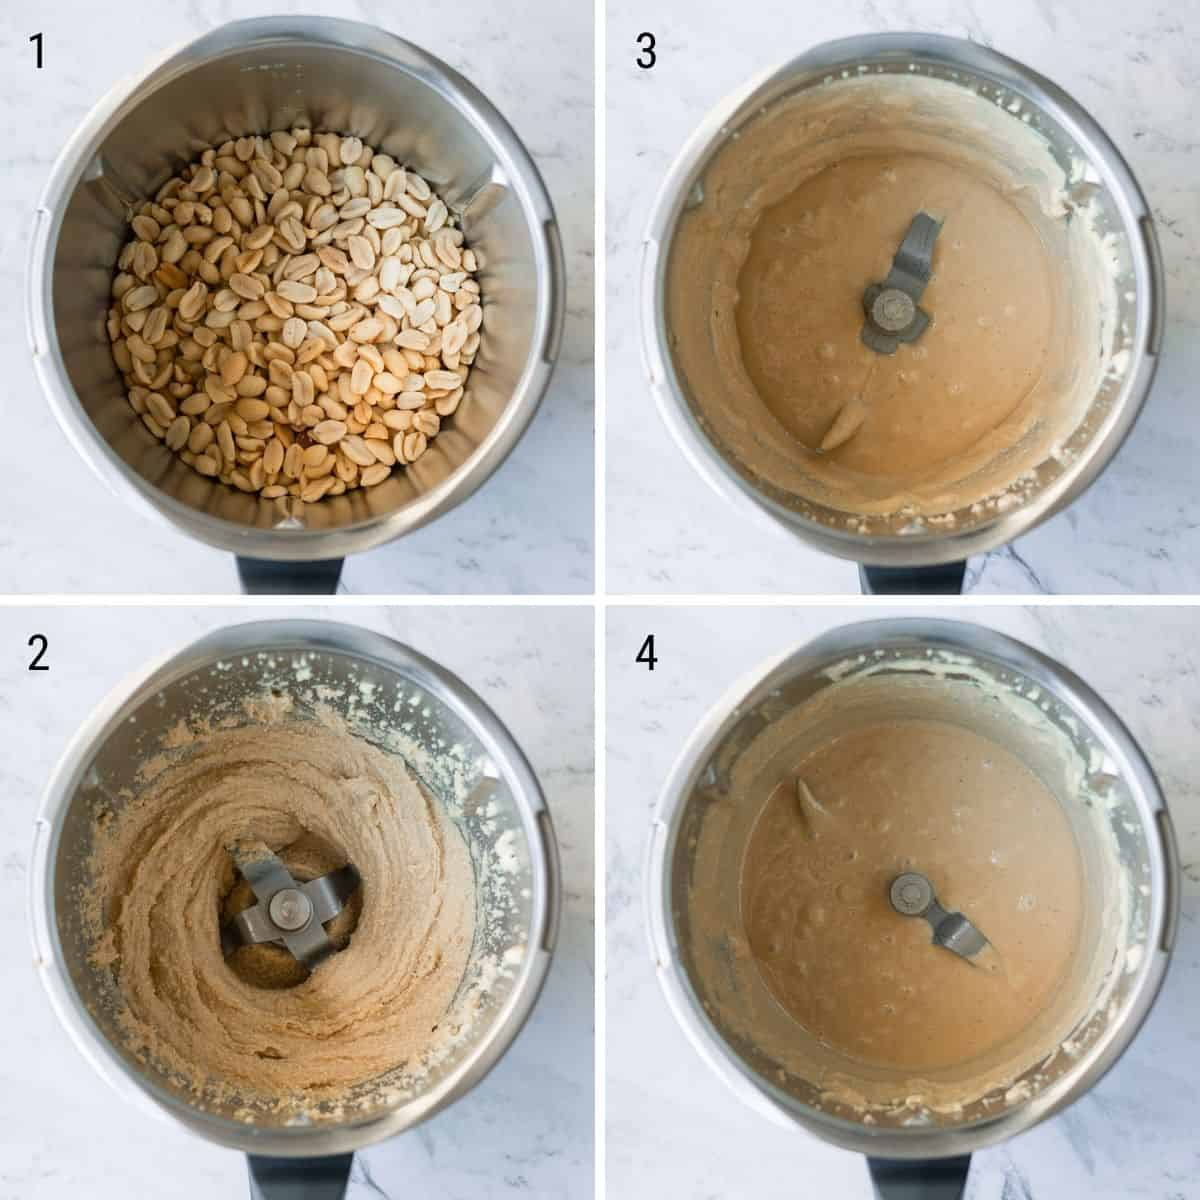 A collection of images explaining how to make peanut butter in the Thermomix.